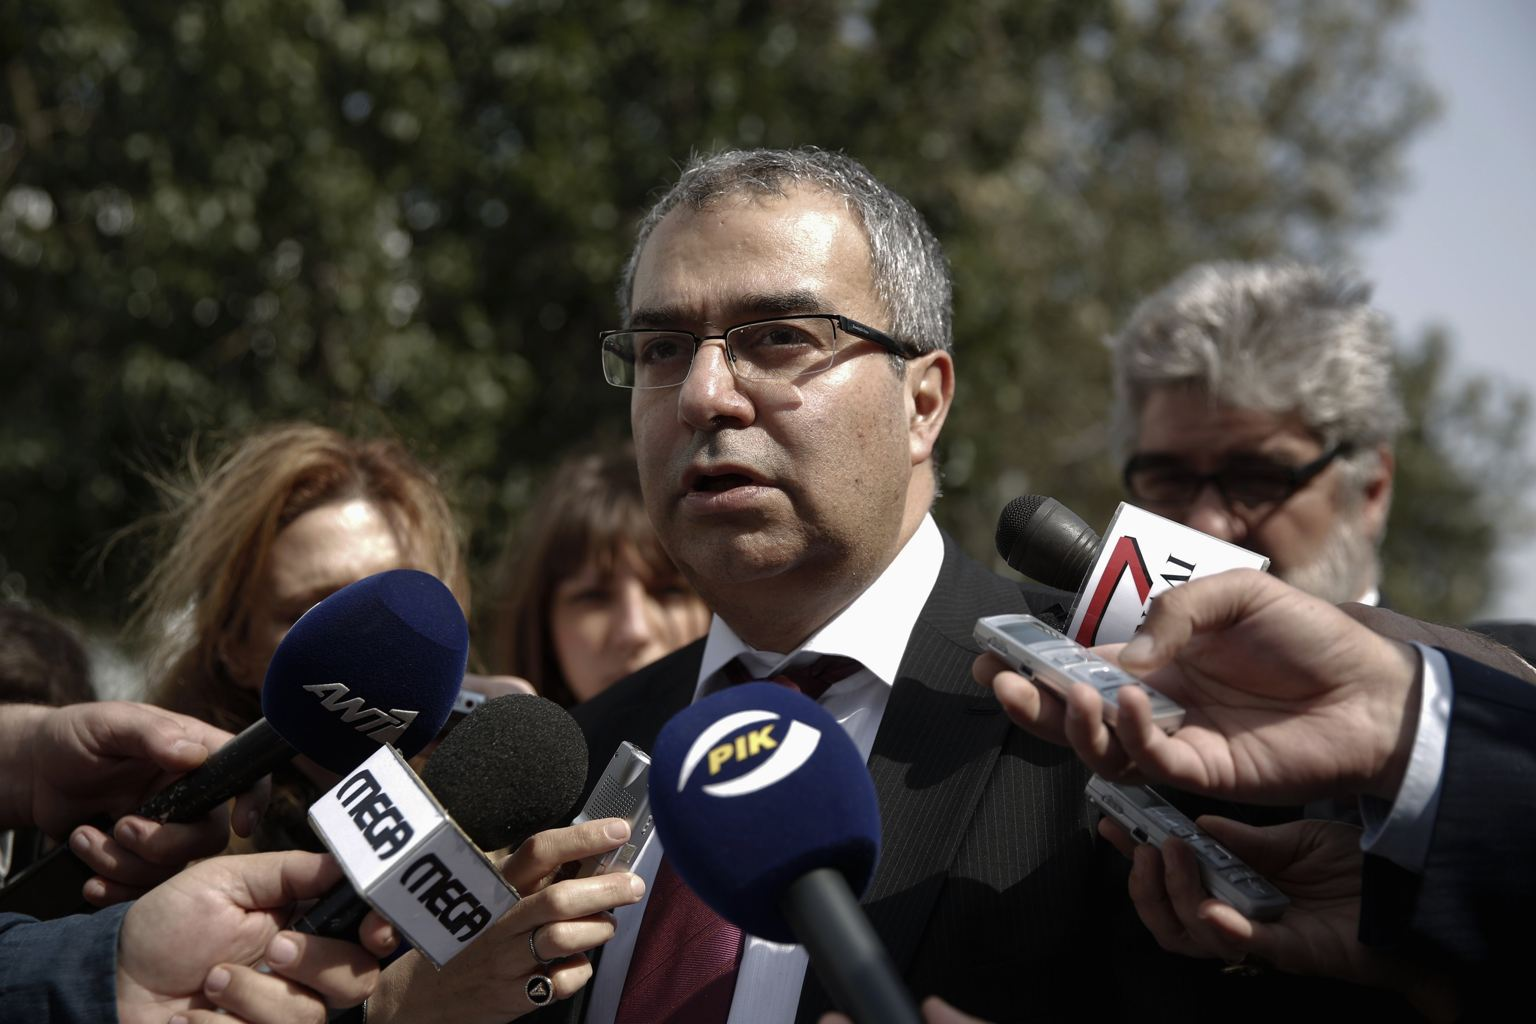 CB governor expected to 'correct' critical comments